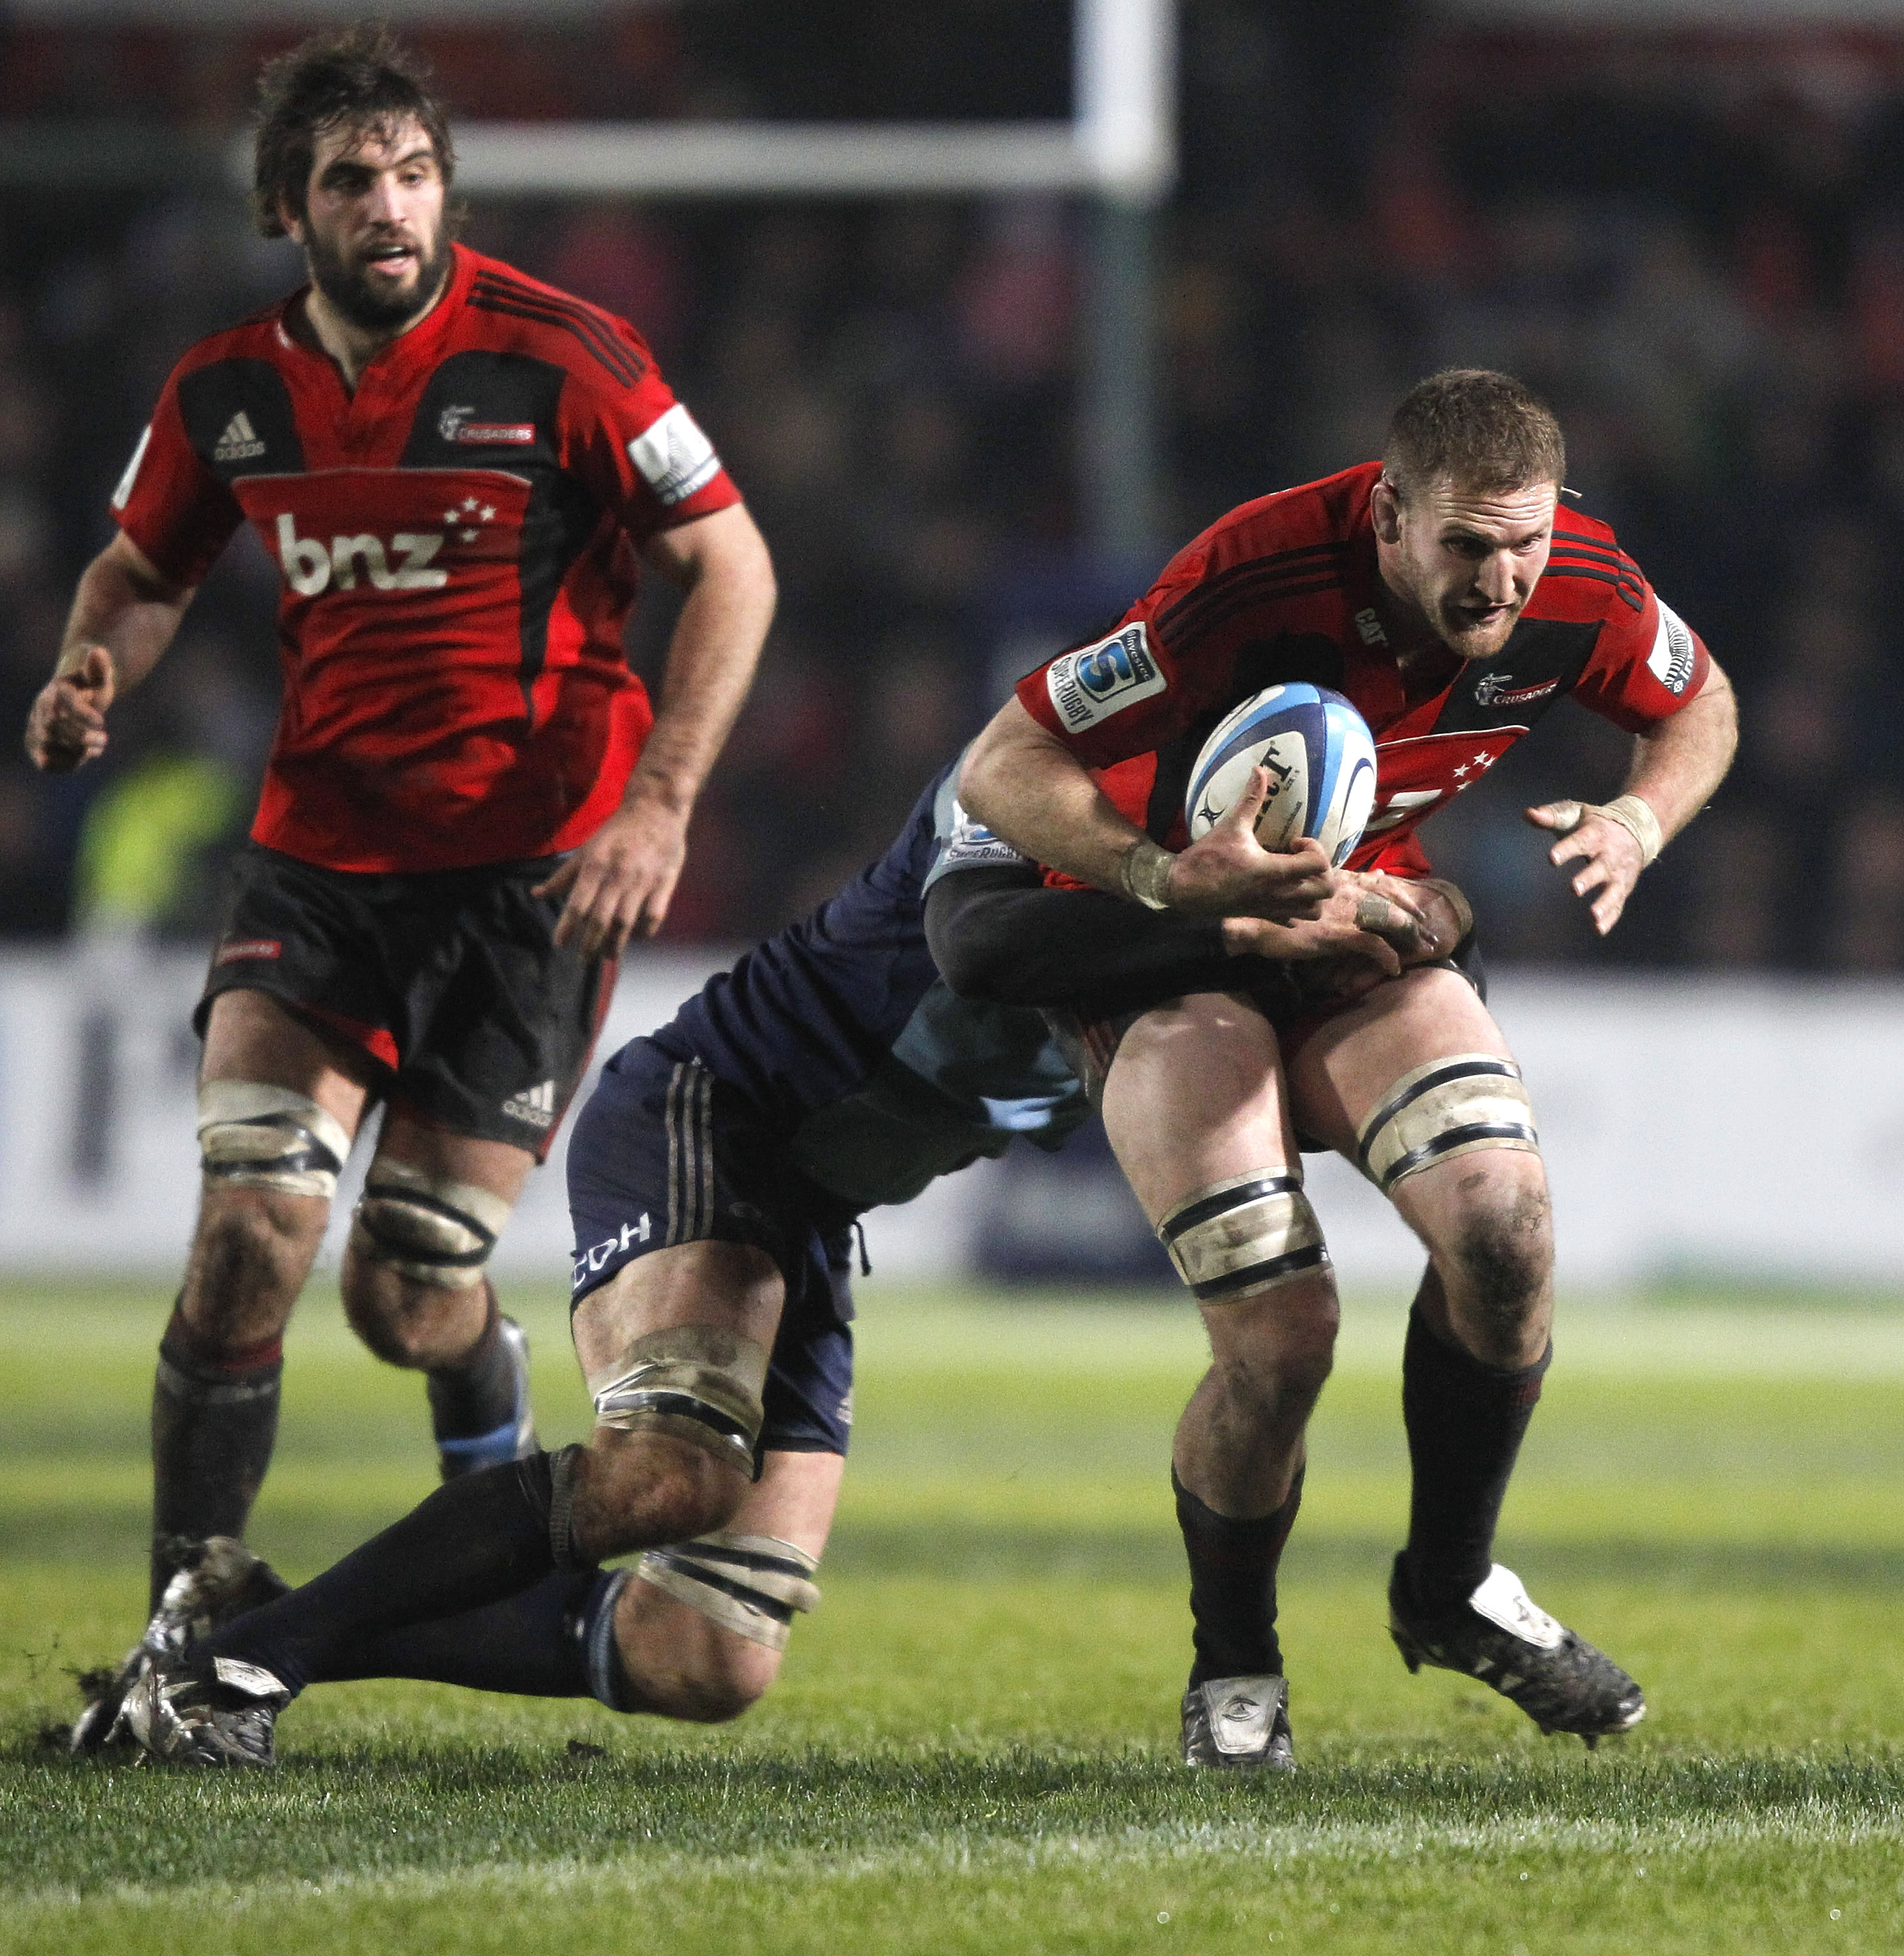 CHRISTCHURCH, NEW ZEALAND - JUNE 11: Kieran Read of the Crusaders is tackled during the round 17 Super Rugby match between the Crusaders and the Blues at Alpine Energy Stadium on June 11, 2011 in Christchurch, New Zealand.  (Photo by Martin Hunter/Getty I